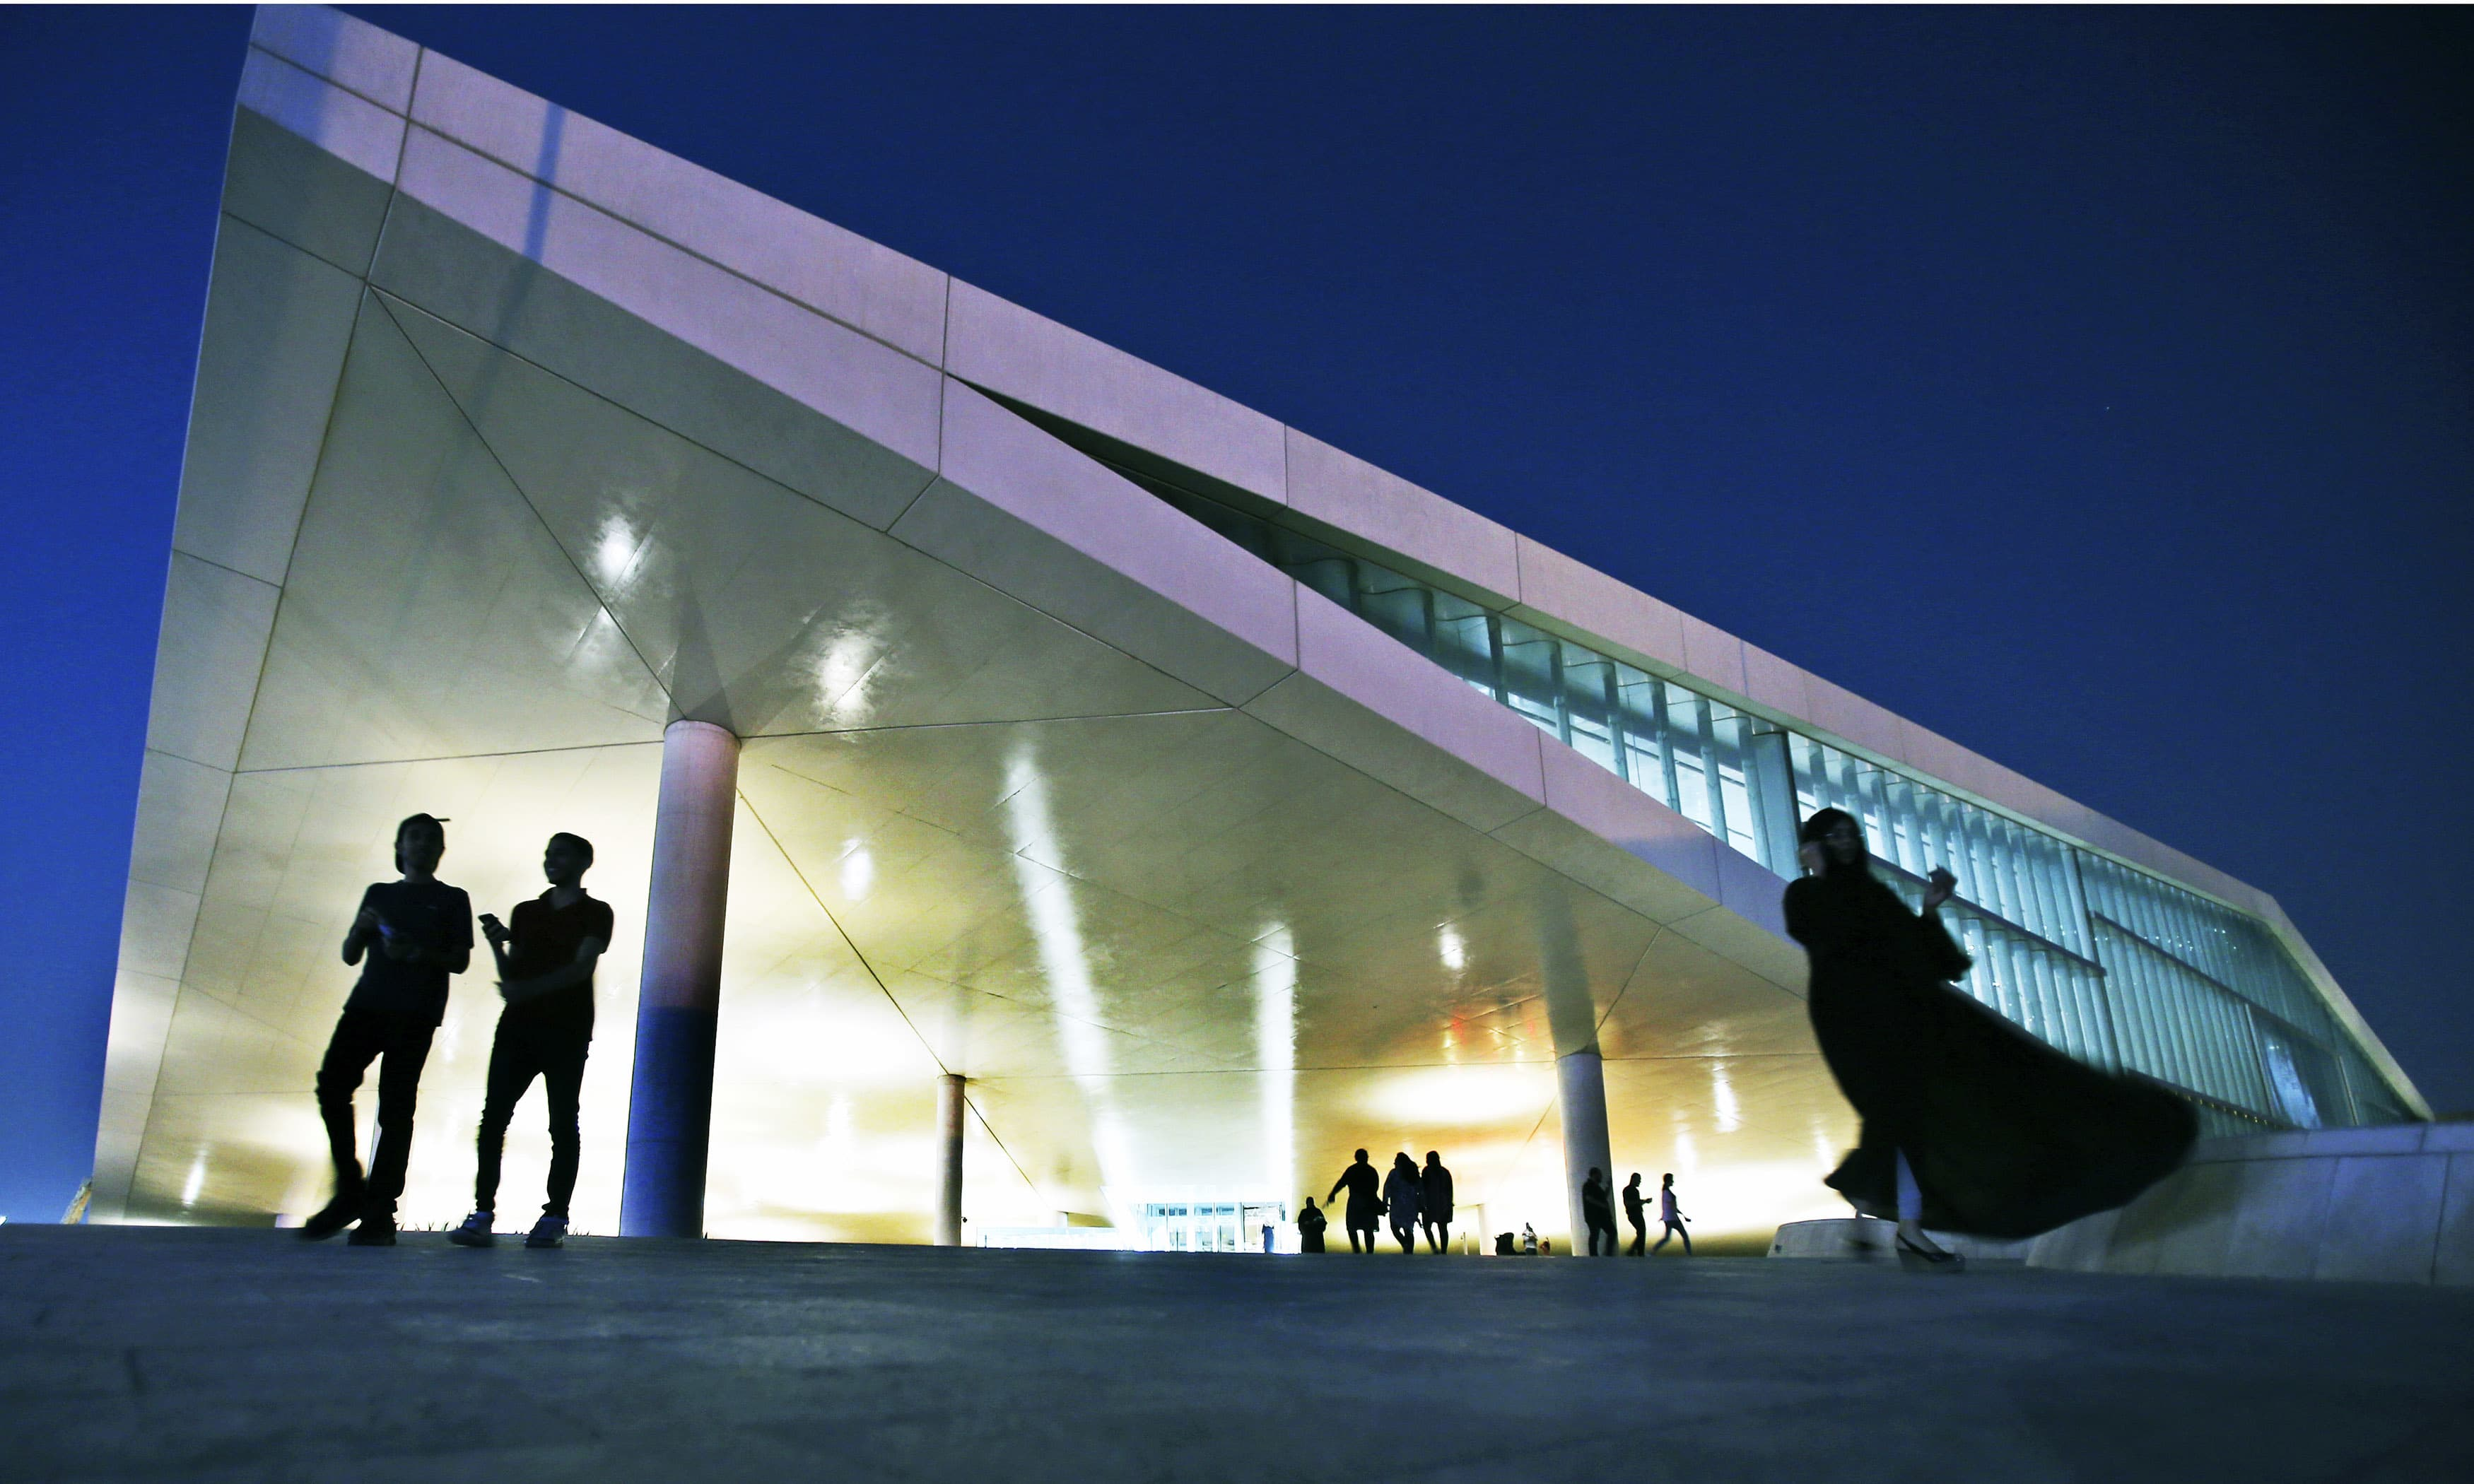 People leave the Qatar National Library building designed by Dutch architecture firm OMA and has opened recently in Doha, Qatar. —AP